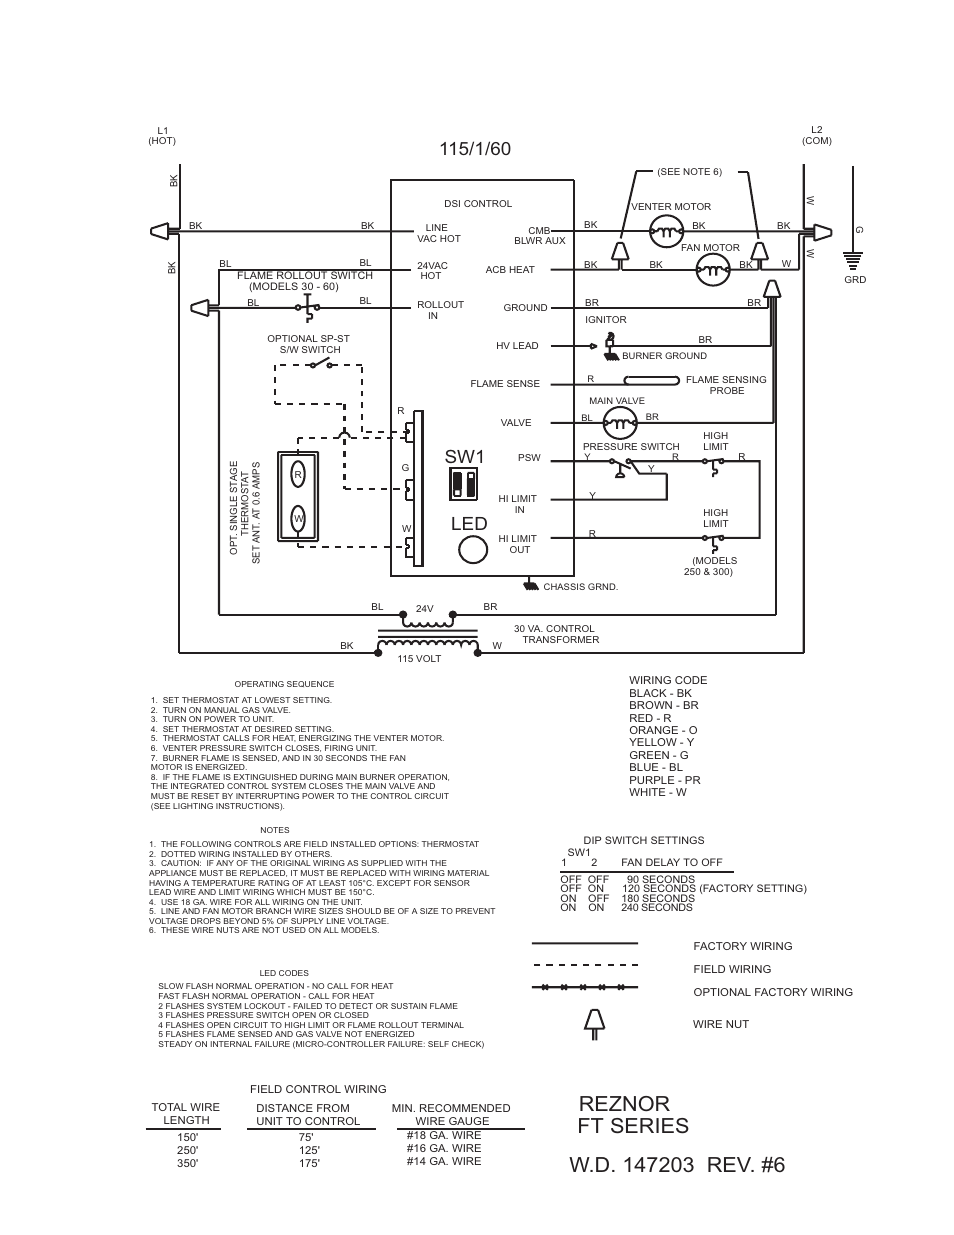 reznor ft unit installation manual page13?resized665%2C861 reznor heater wiring schematic efcaviation com reznor fe 100 wiring diagram at reclaimingppi.co